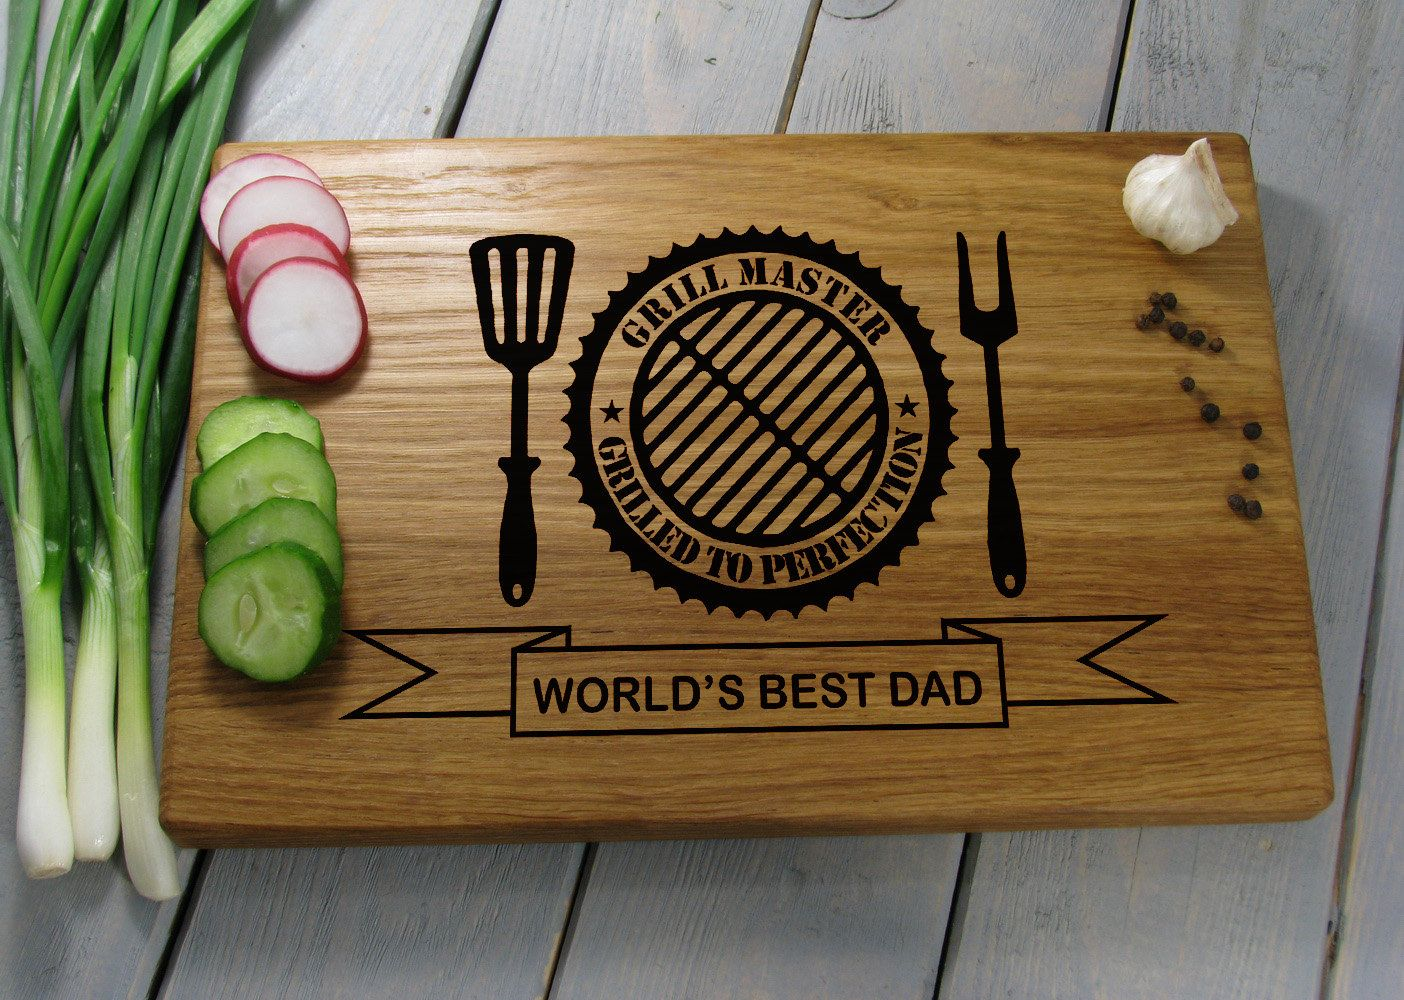 Worlds Best Dad Personalized Cutting Board Engraved Chopping Board